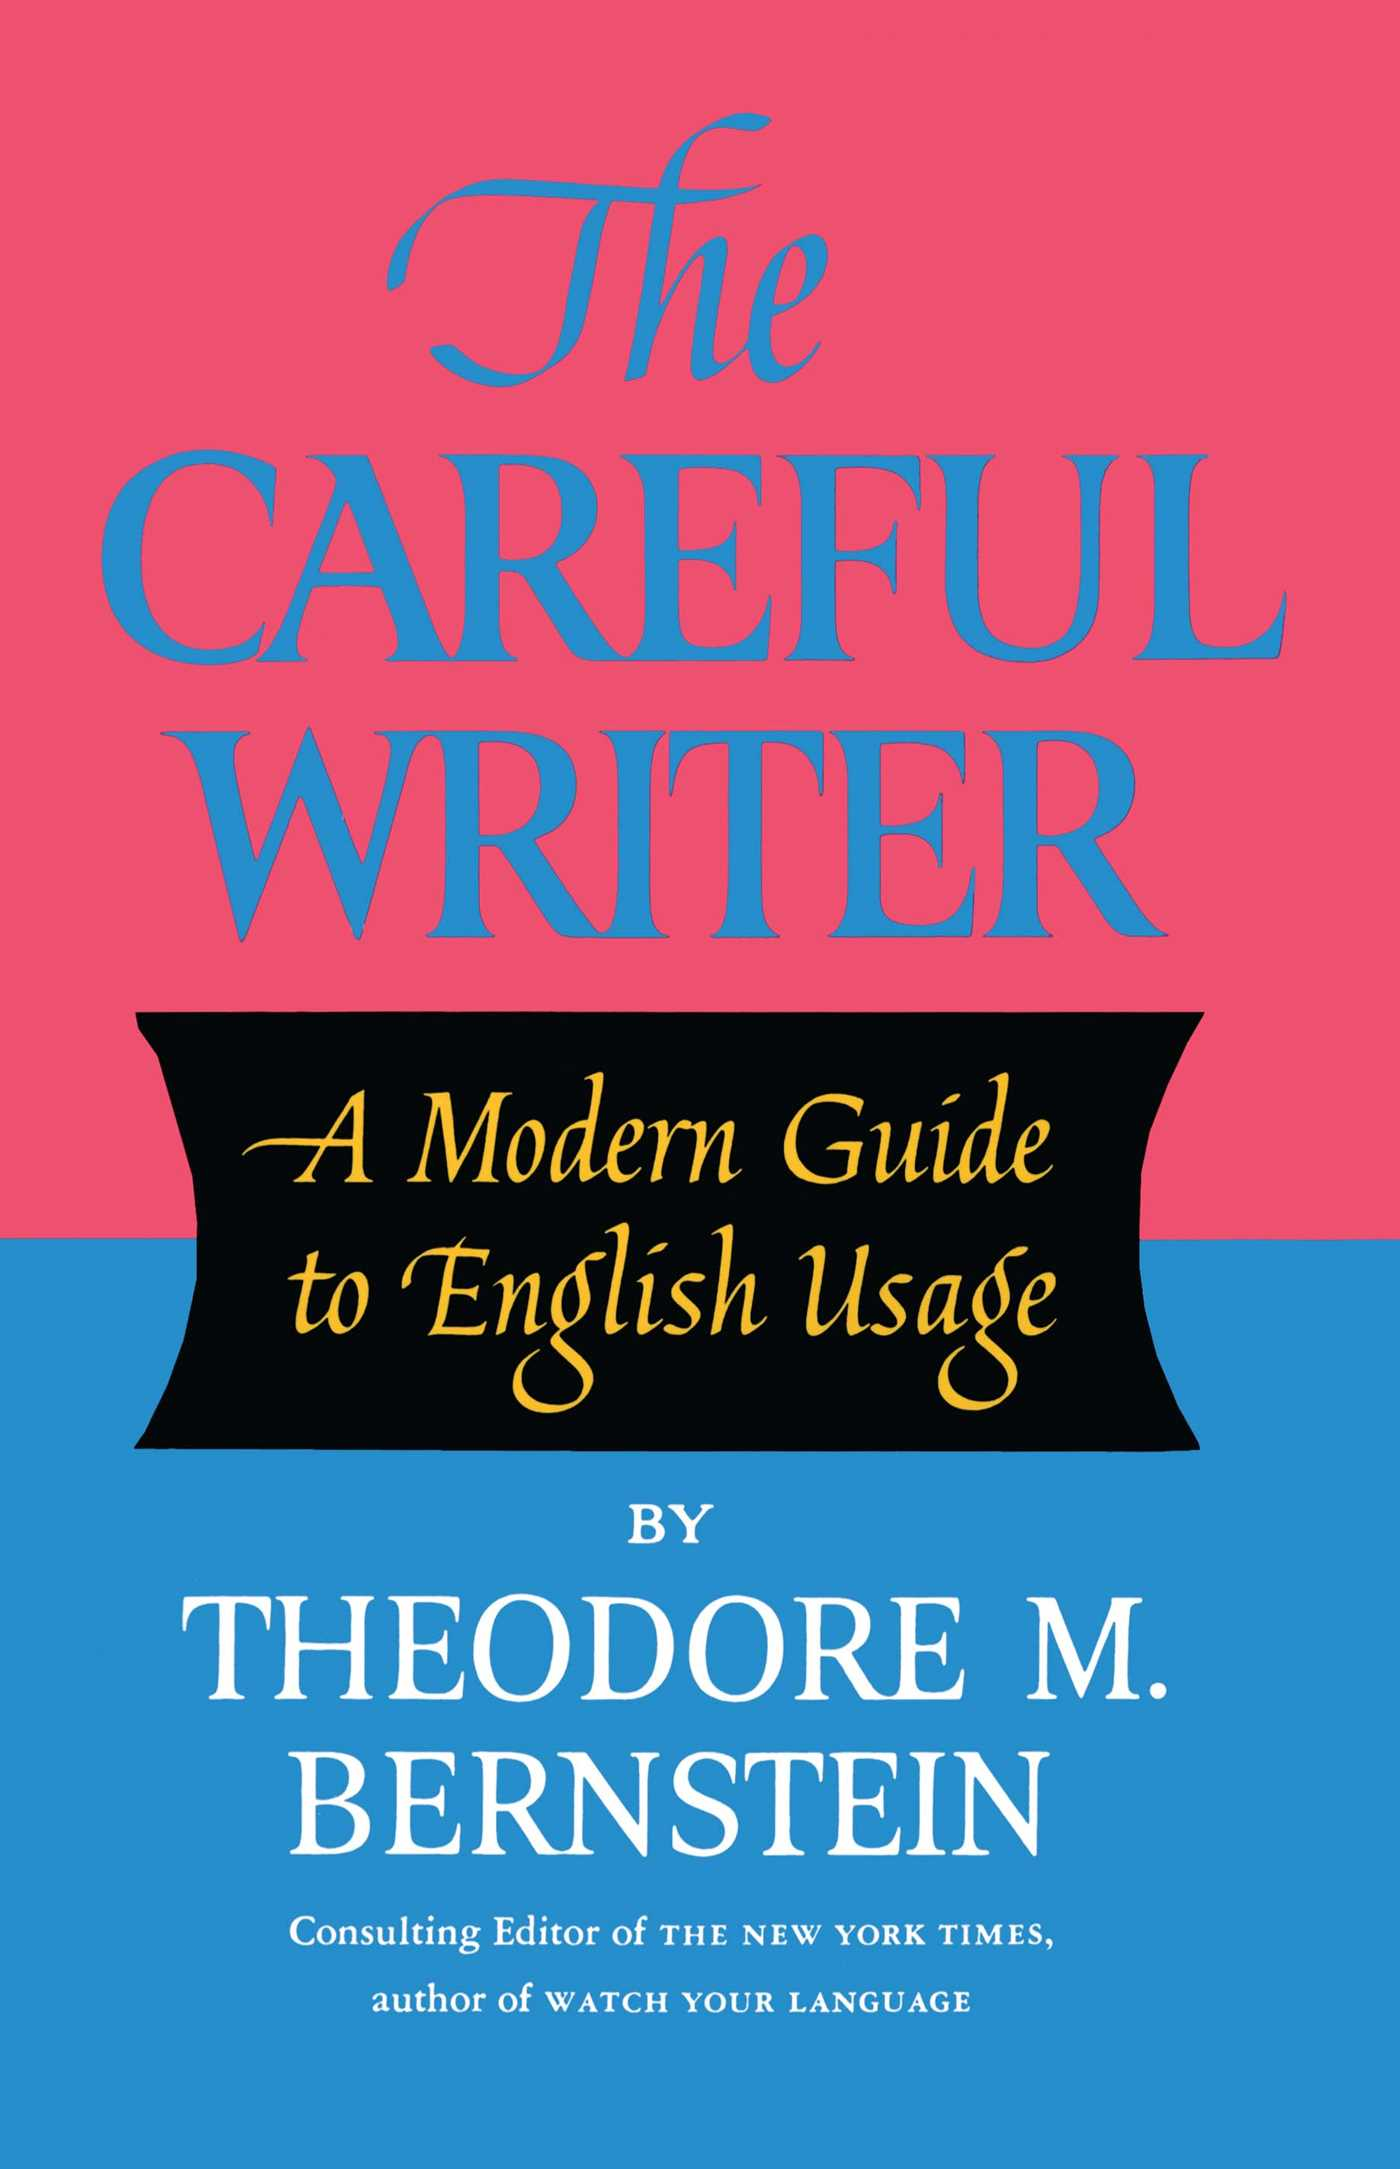 Careful-writer-9780684826325_hr